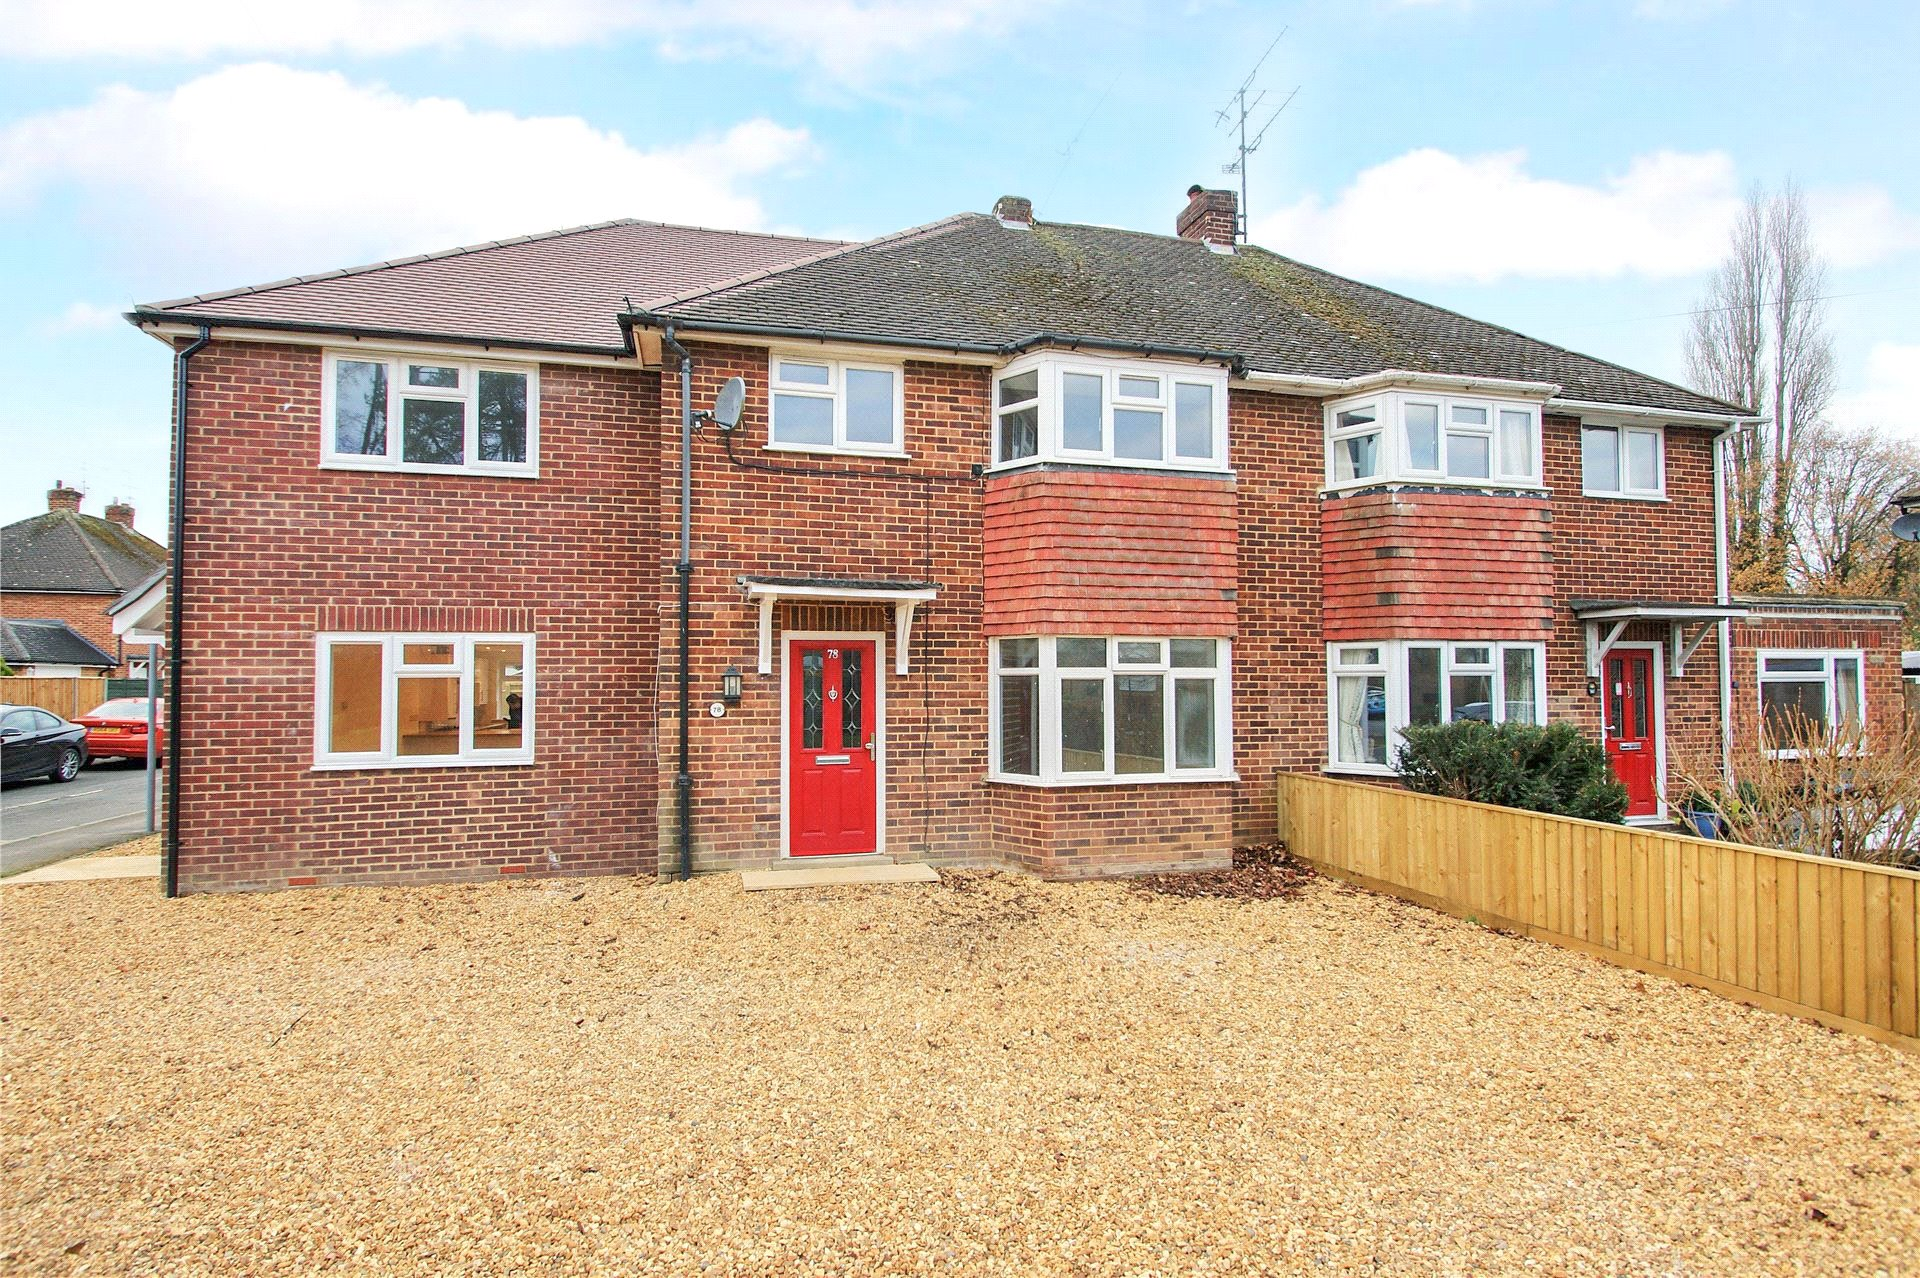 3 Bedrooms Terraced House for sale in Eastheath Avenue, Wokingham, Berkshire, RG41